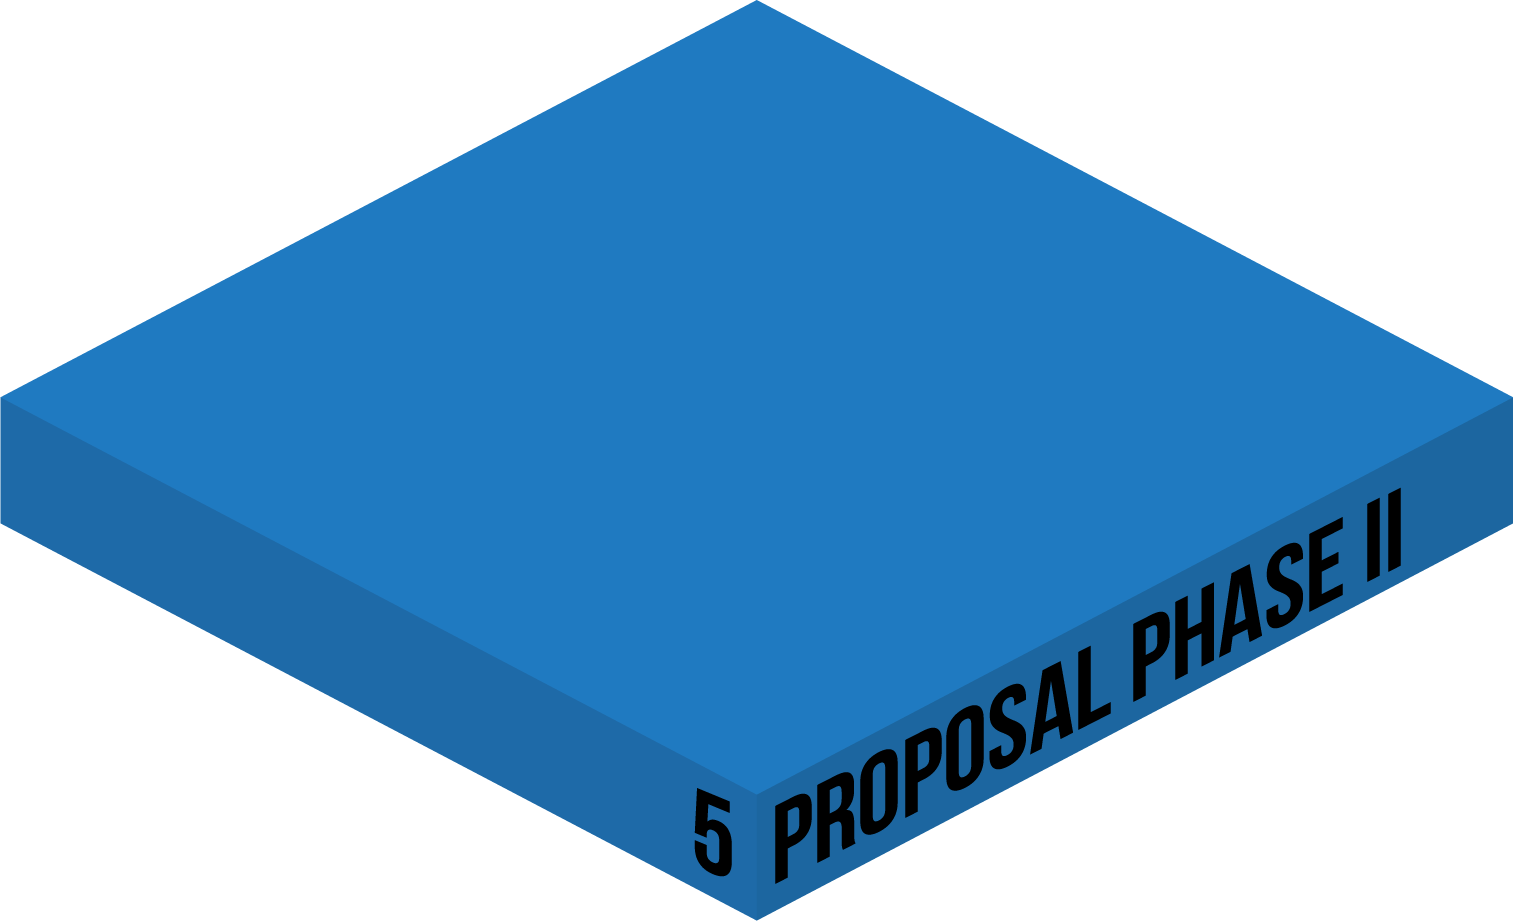 5. PROPOSAL PHASE II